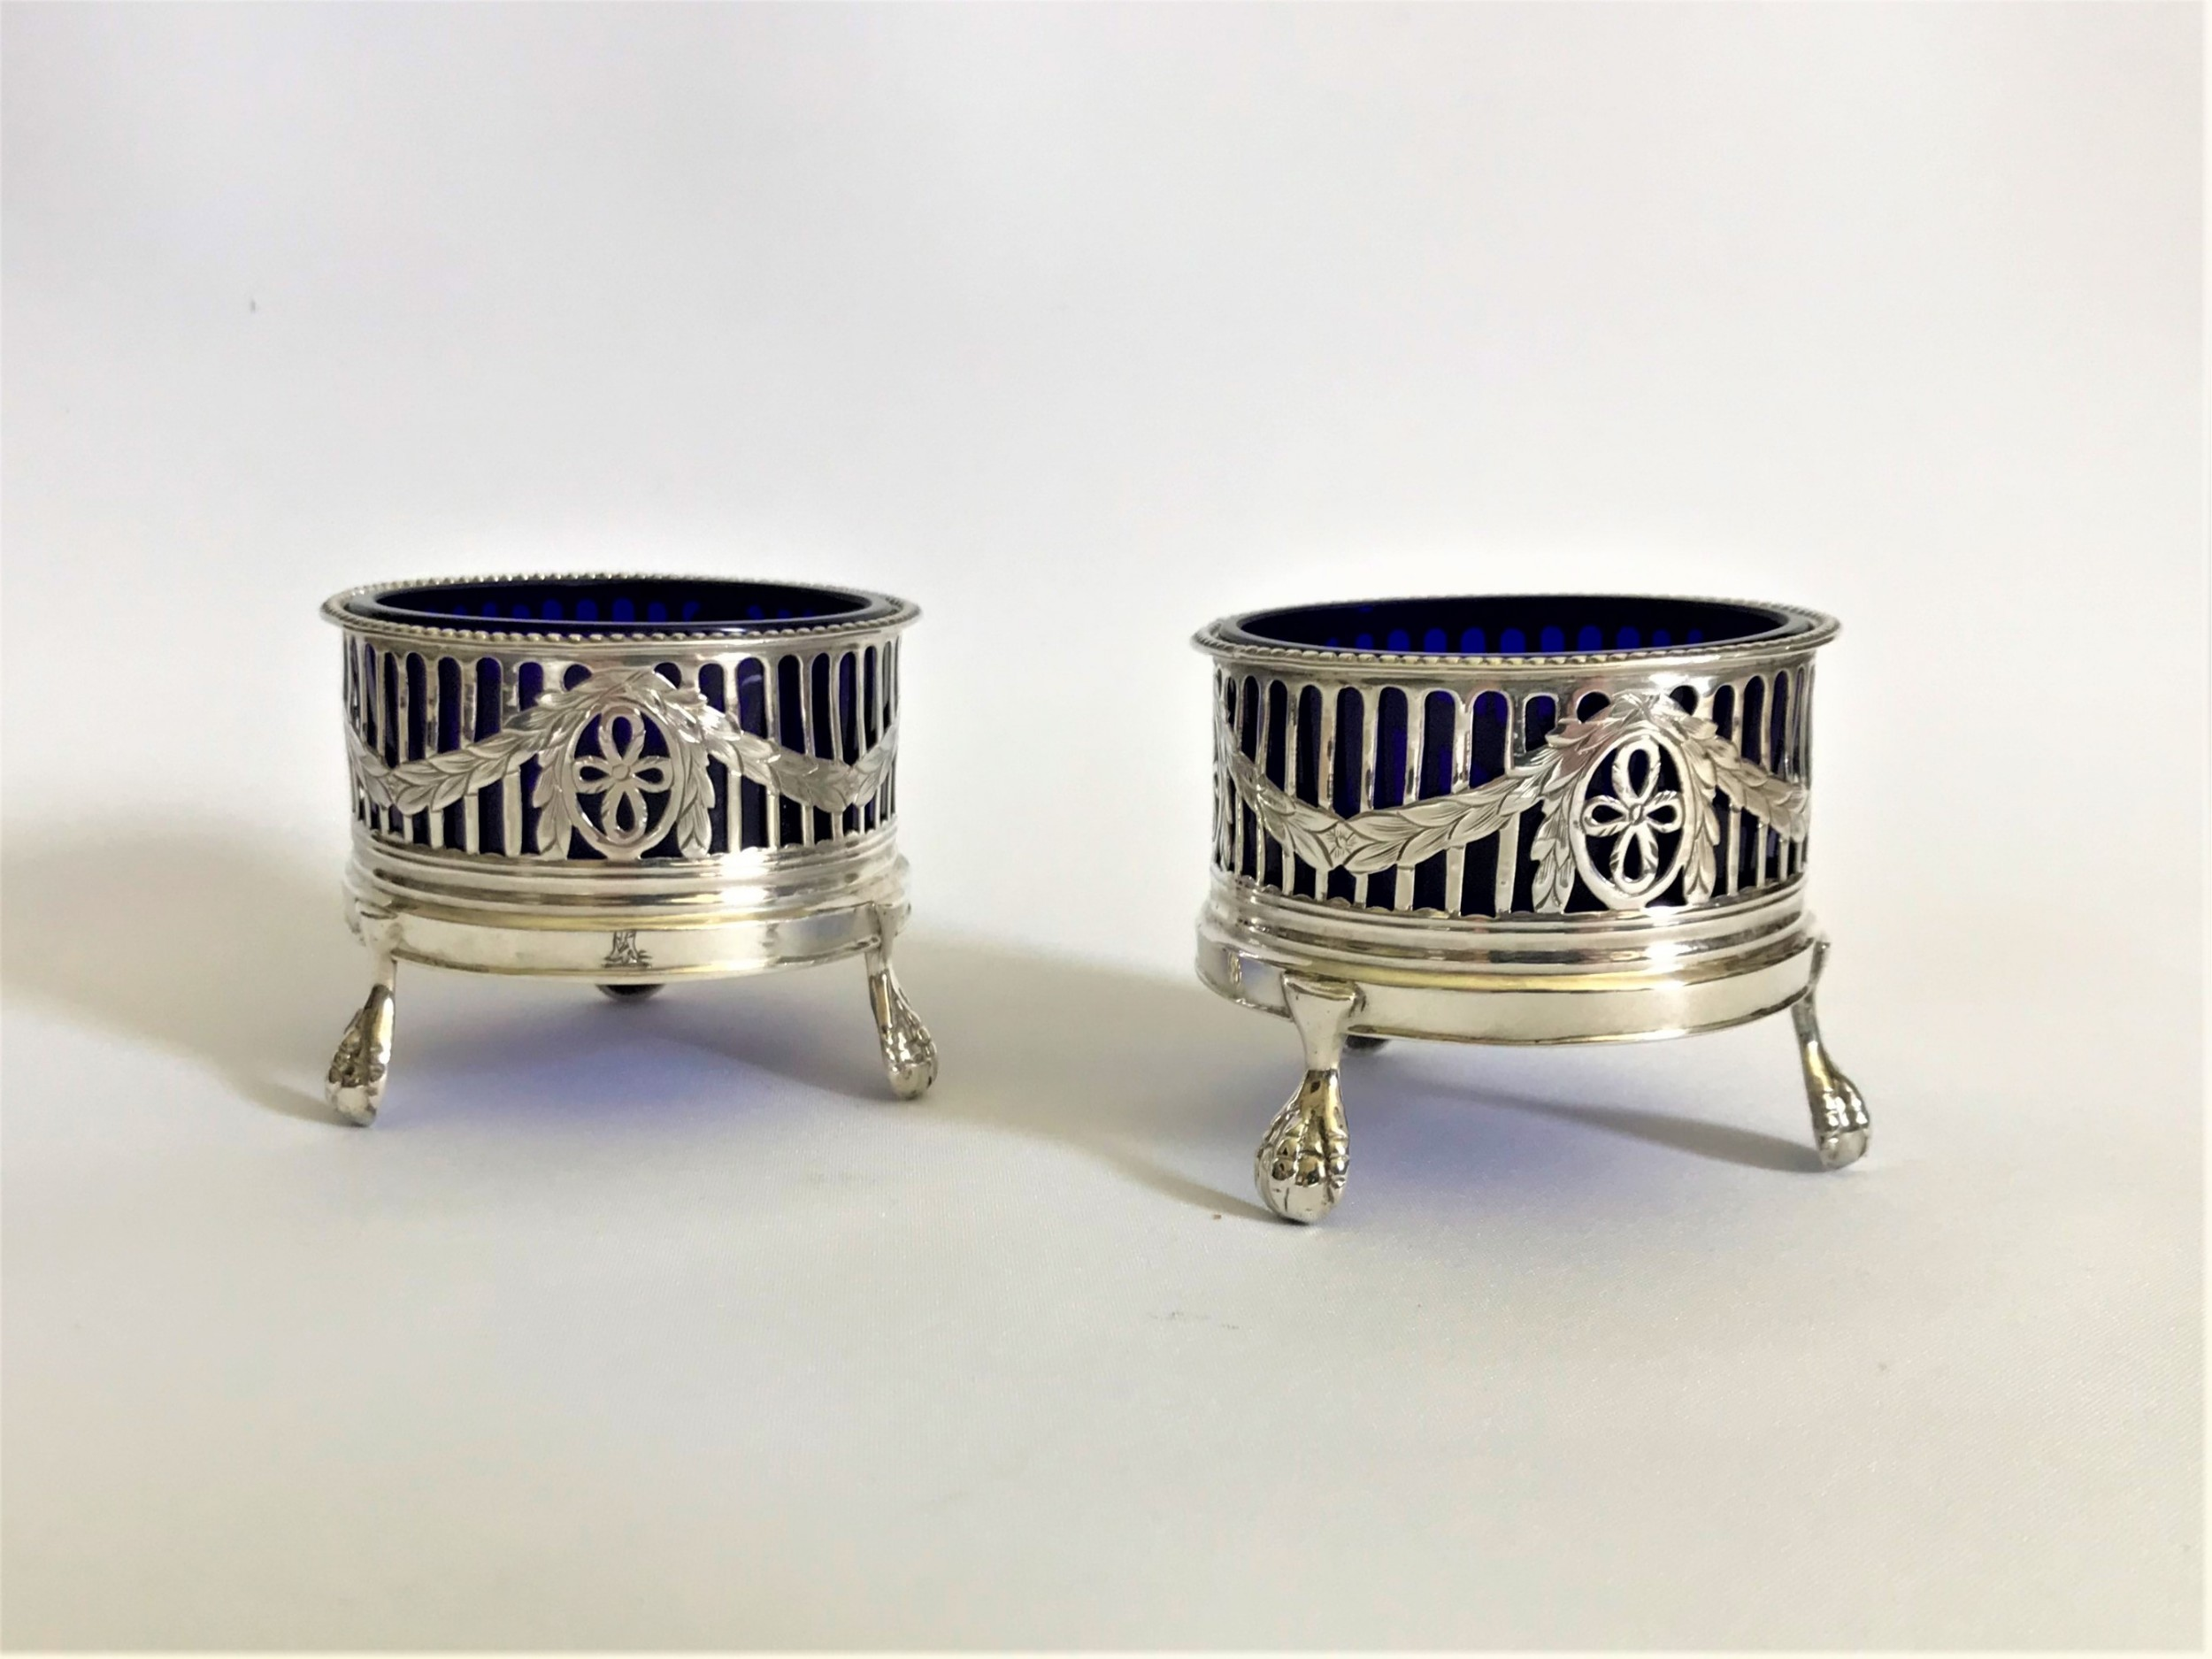 a superb pair of 18th century silver condiment tubs